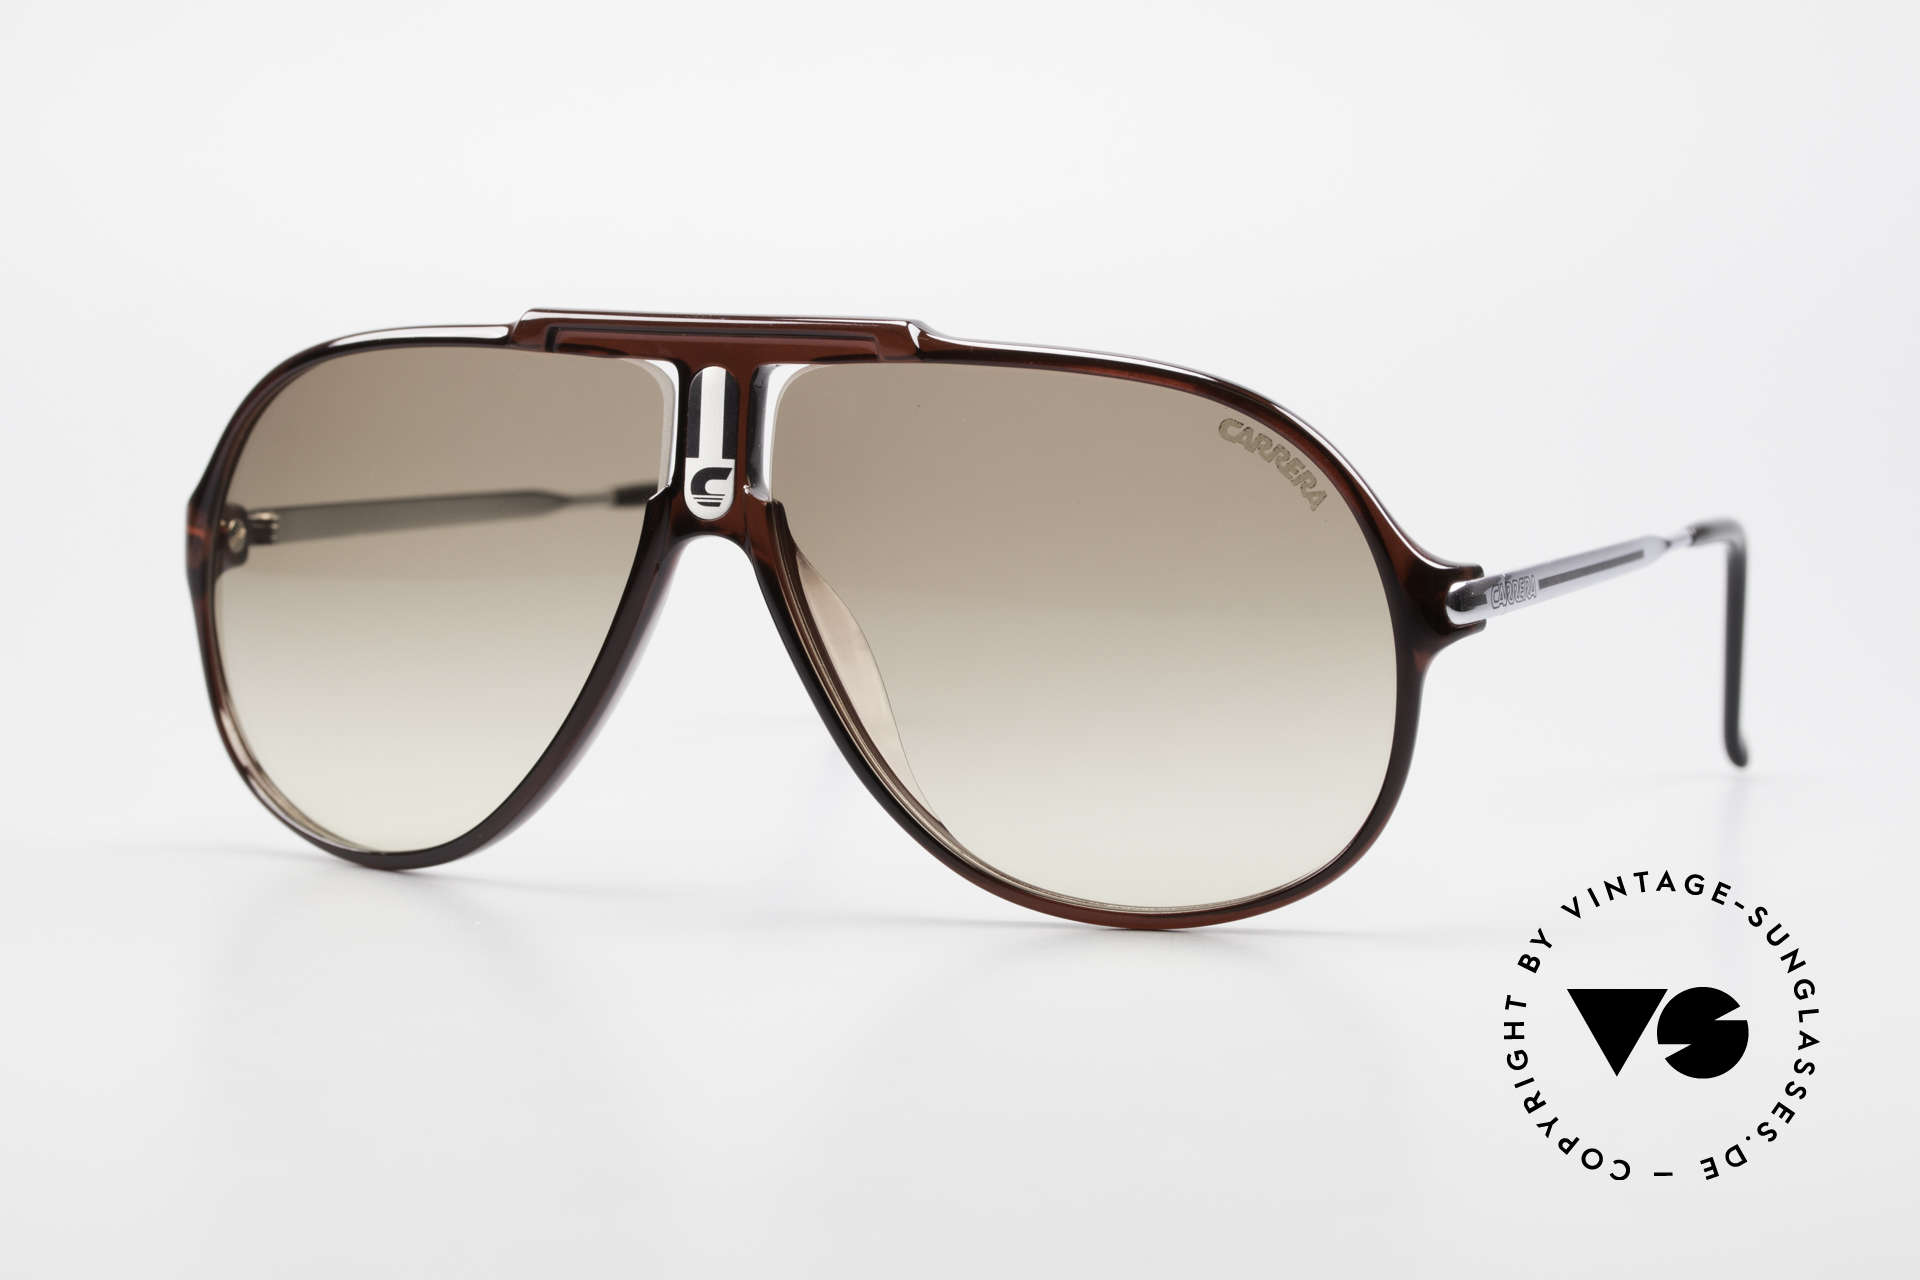 Carrera 5590 3 Sets Interchangeable Lenses, simply ingenious 80's vintage sunglasses by CARRERA, Made for Men